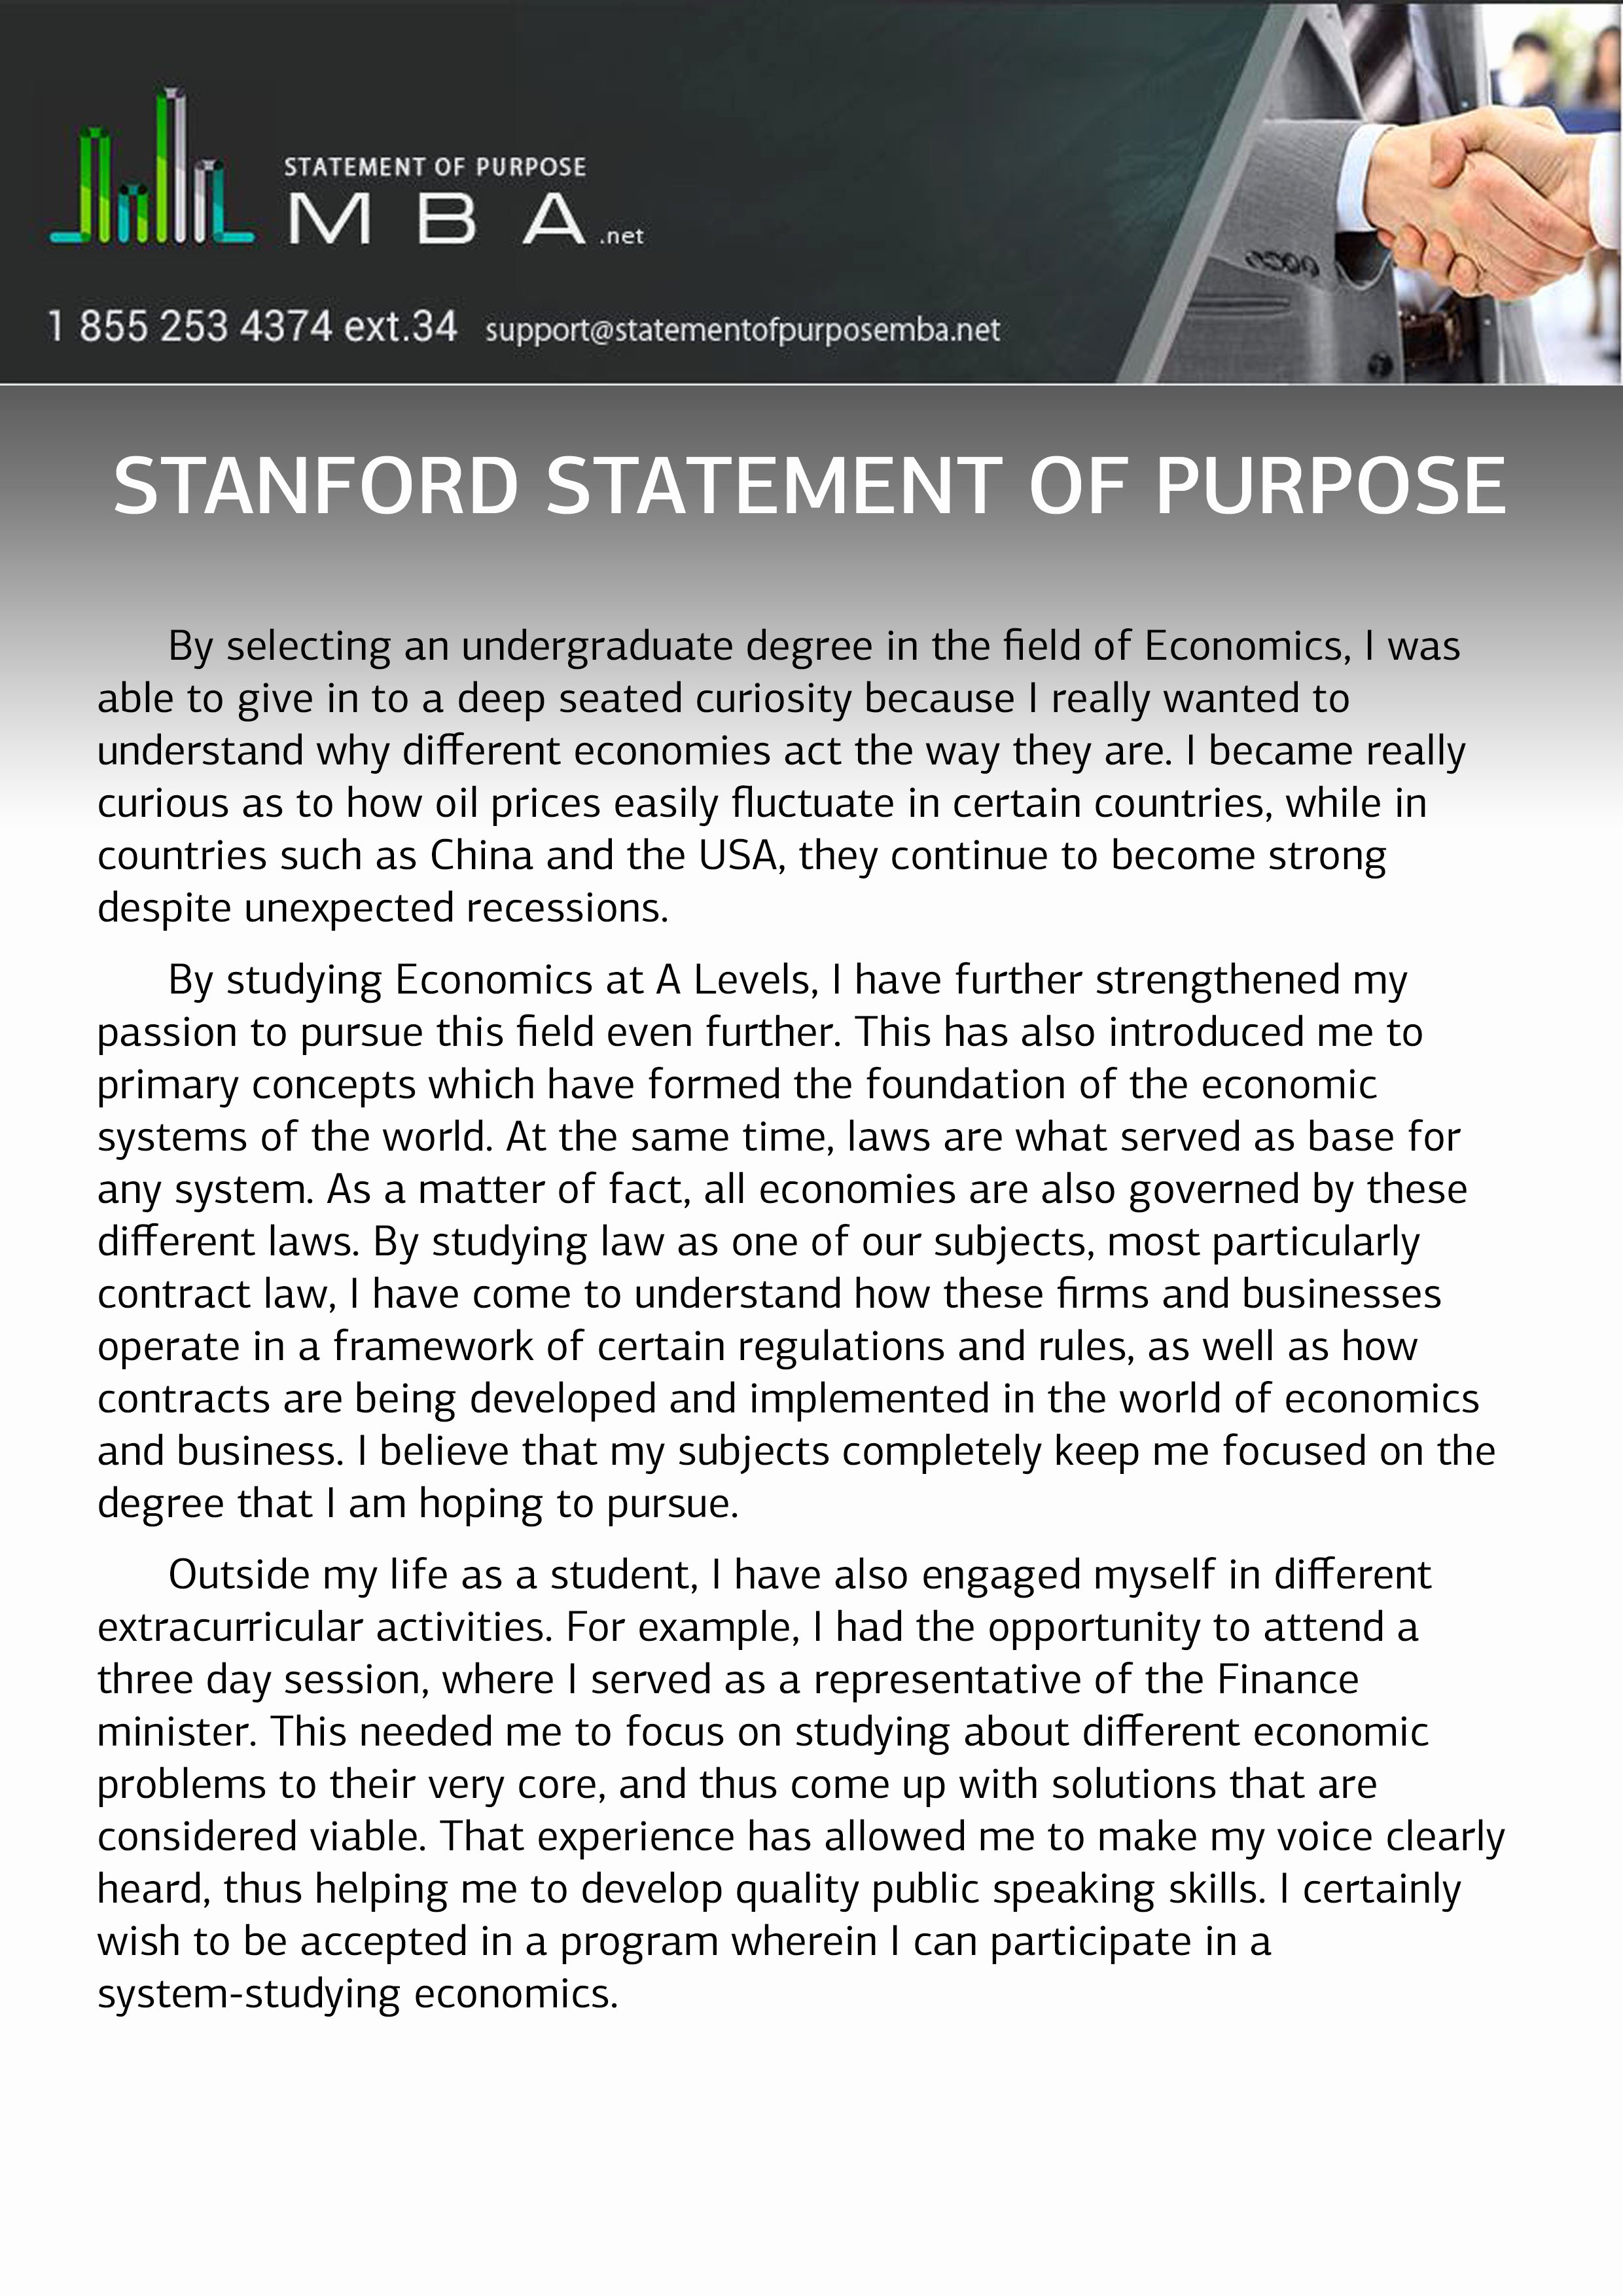 Stanford Letter Of Recommendation Lovely Stanford Statement Of Purpose Writing with Professionals